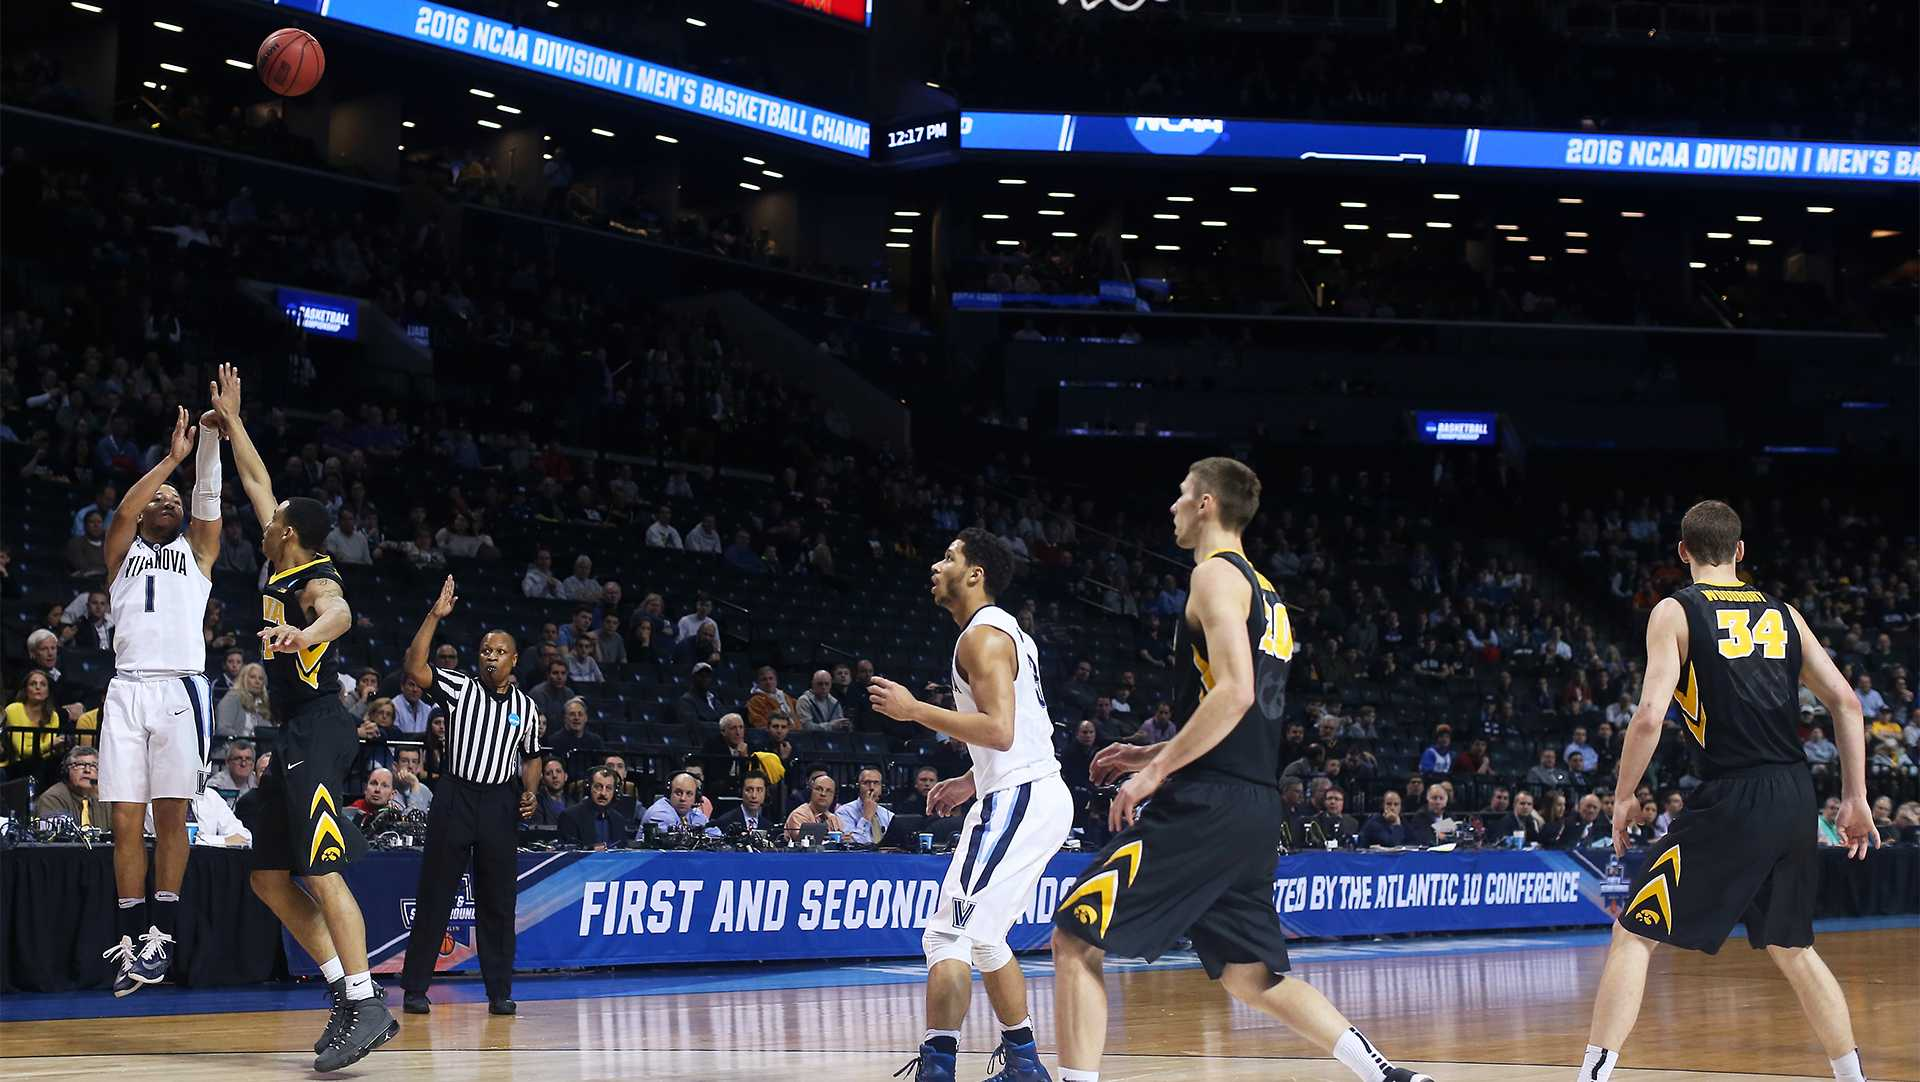 Villanova Wildcats guard Jalen Brunson (1) shoots a three against Iowa Hawkeyes guard Christian Williams (11) in the Barclays Center on Sunday, March 20, 2016 in Brooklyn, New York. Brunson ended the game with 3 rebounds, 12 points, and 4 assists. The Wildcats defeated the Hawkeyes, 87-68. (The Daily Iowan/Joshua Housing)